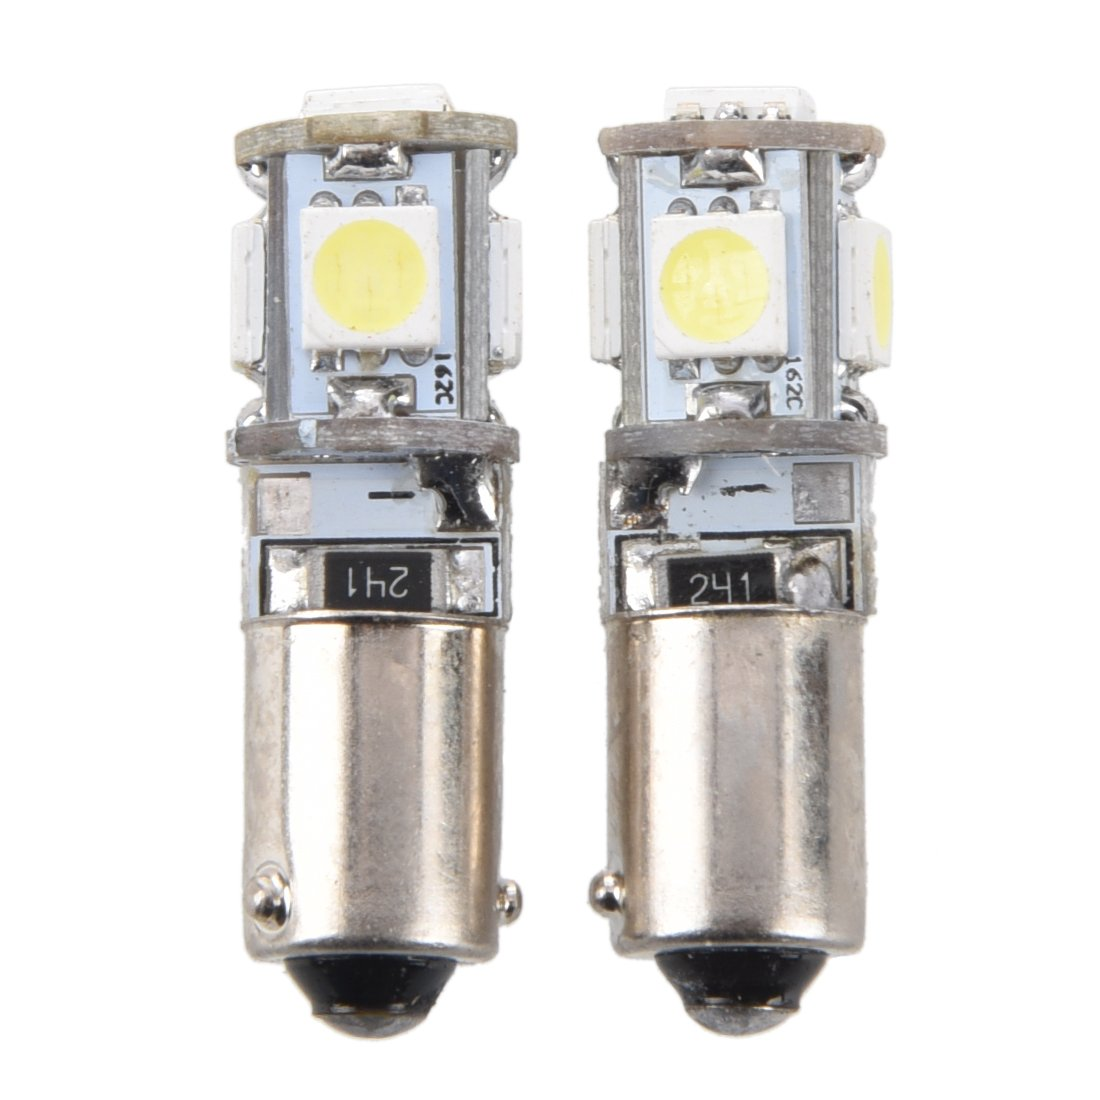 Light Bulb - SODIAL(R) 2X Canbus 5 SMD LED Parking Light Bulb H6W BAX9S Trend 012107